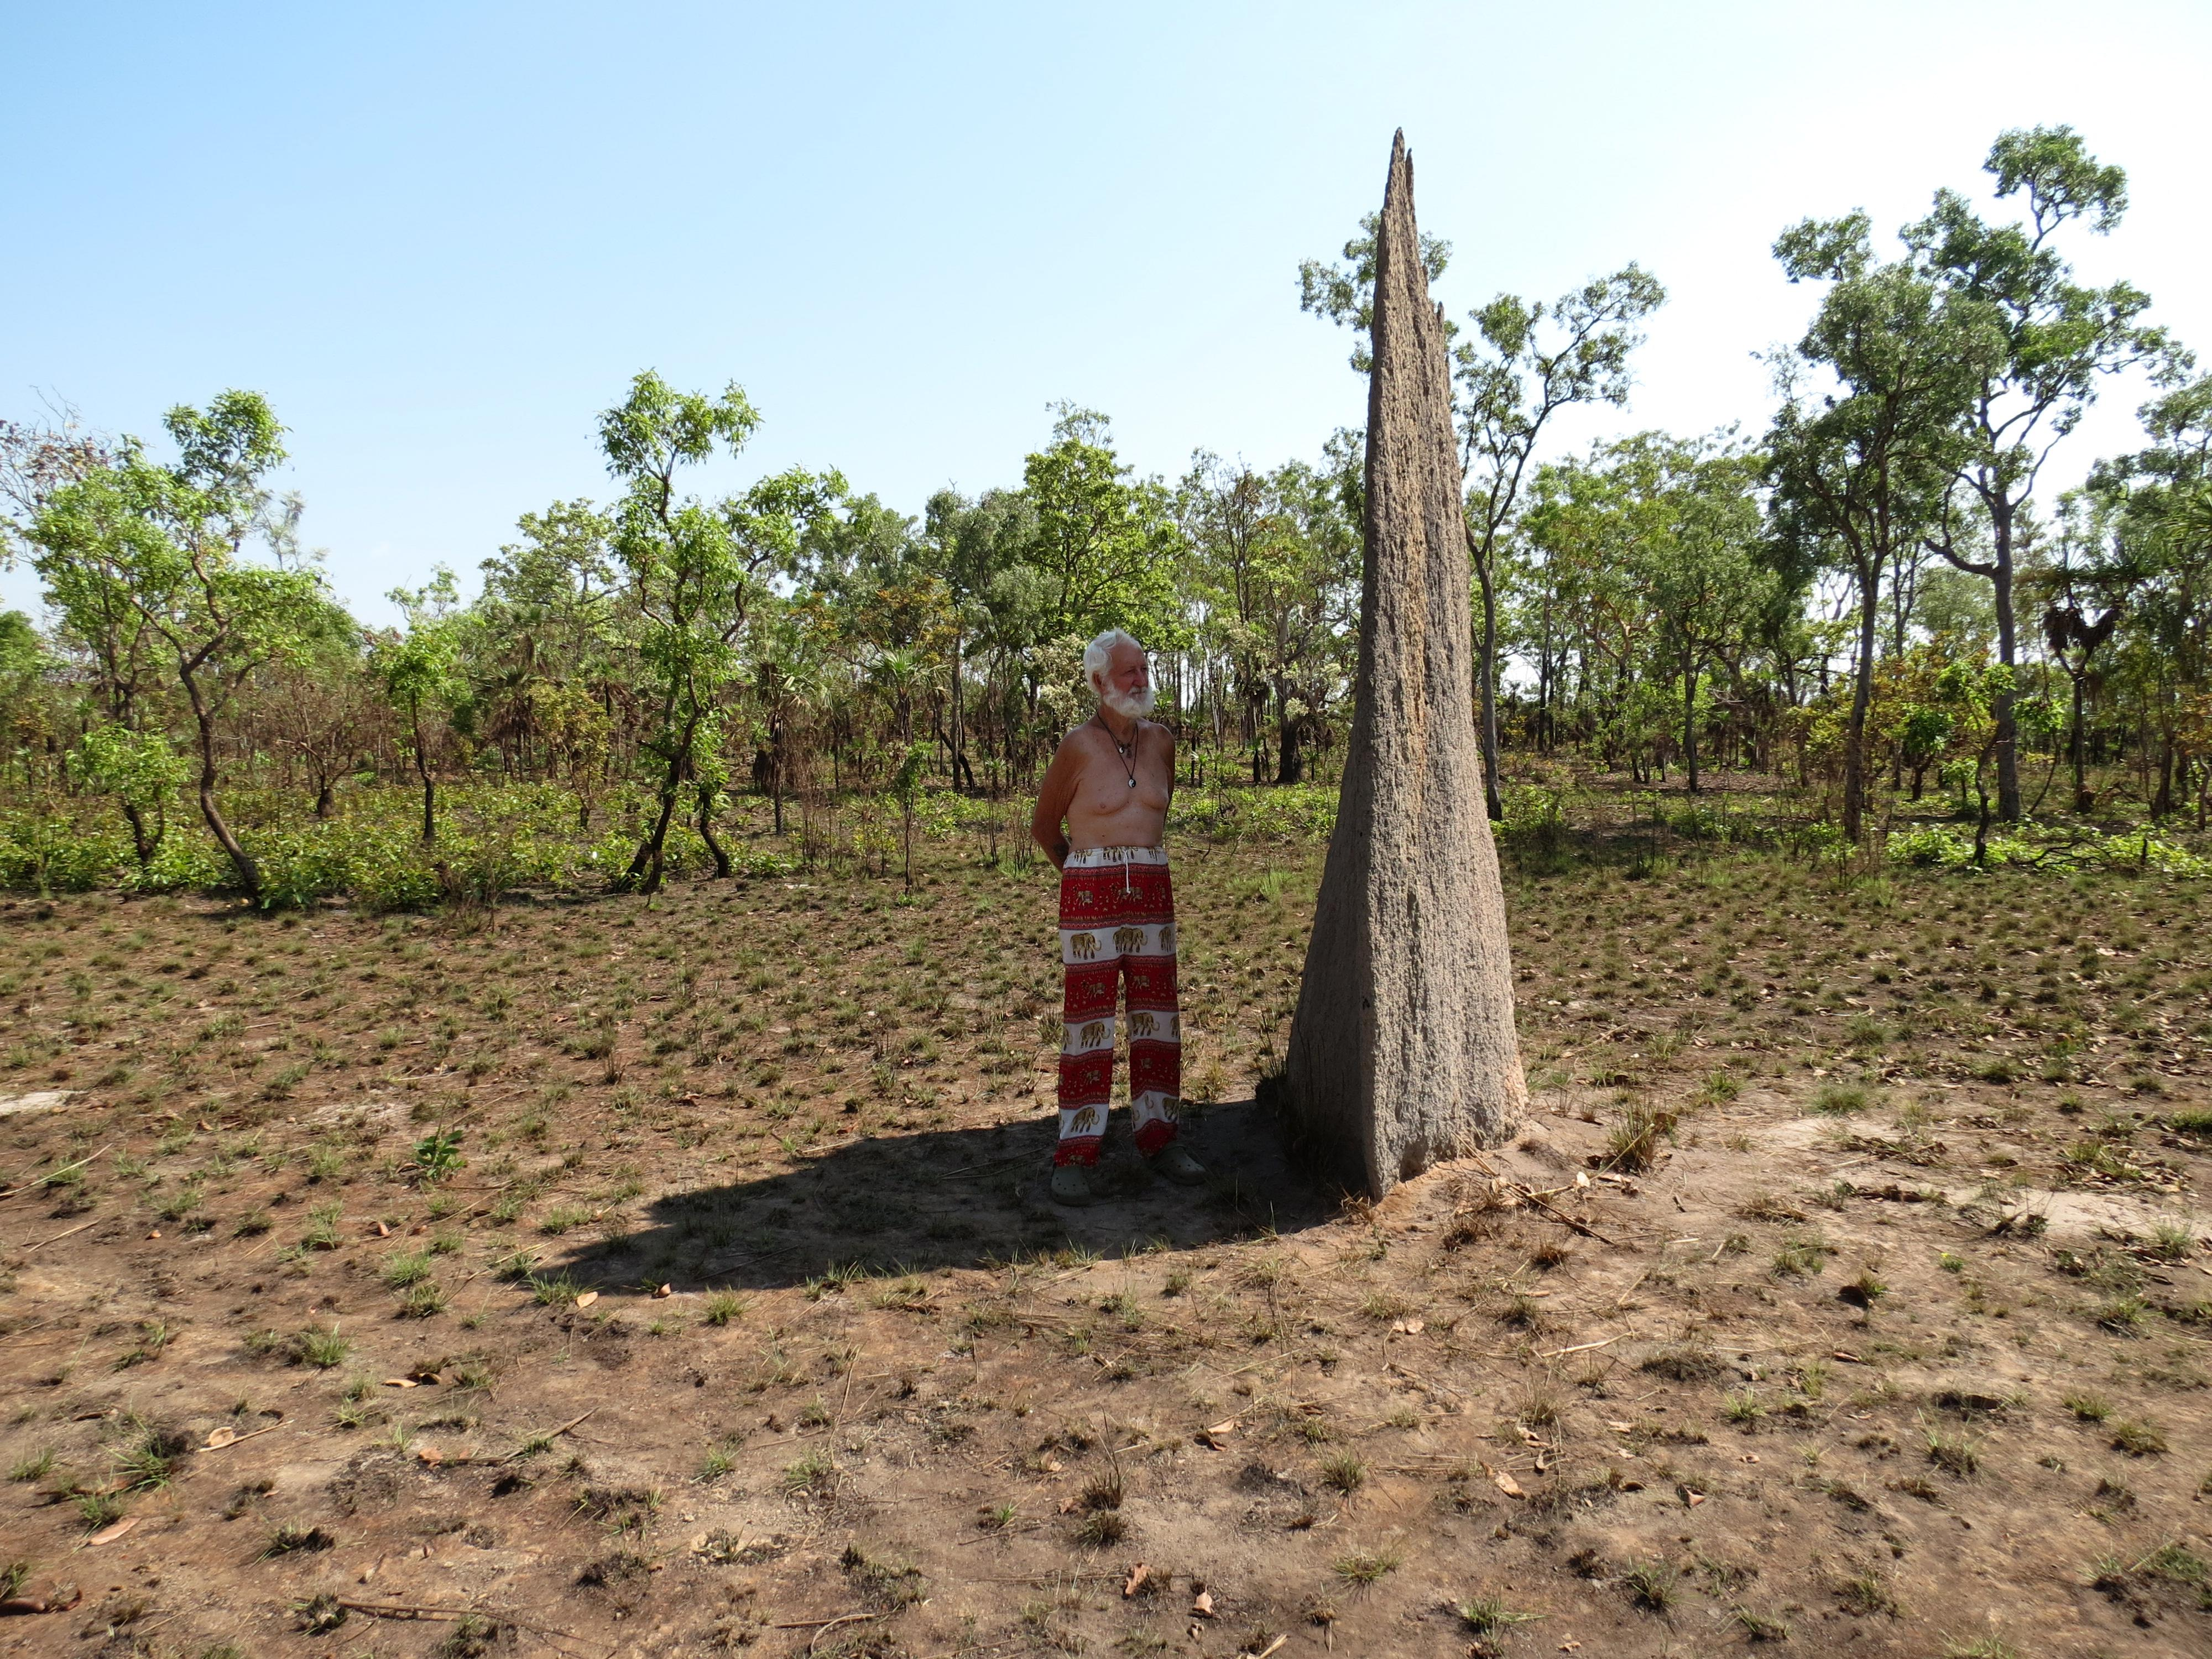 Magnetic Termite Mounds Litchfield National Park, magnetic termite mounds | gypsy life